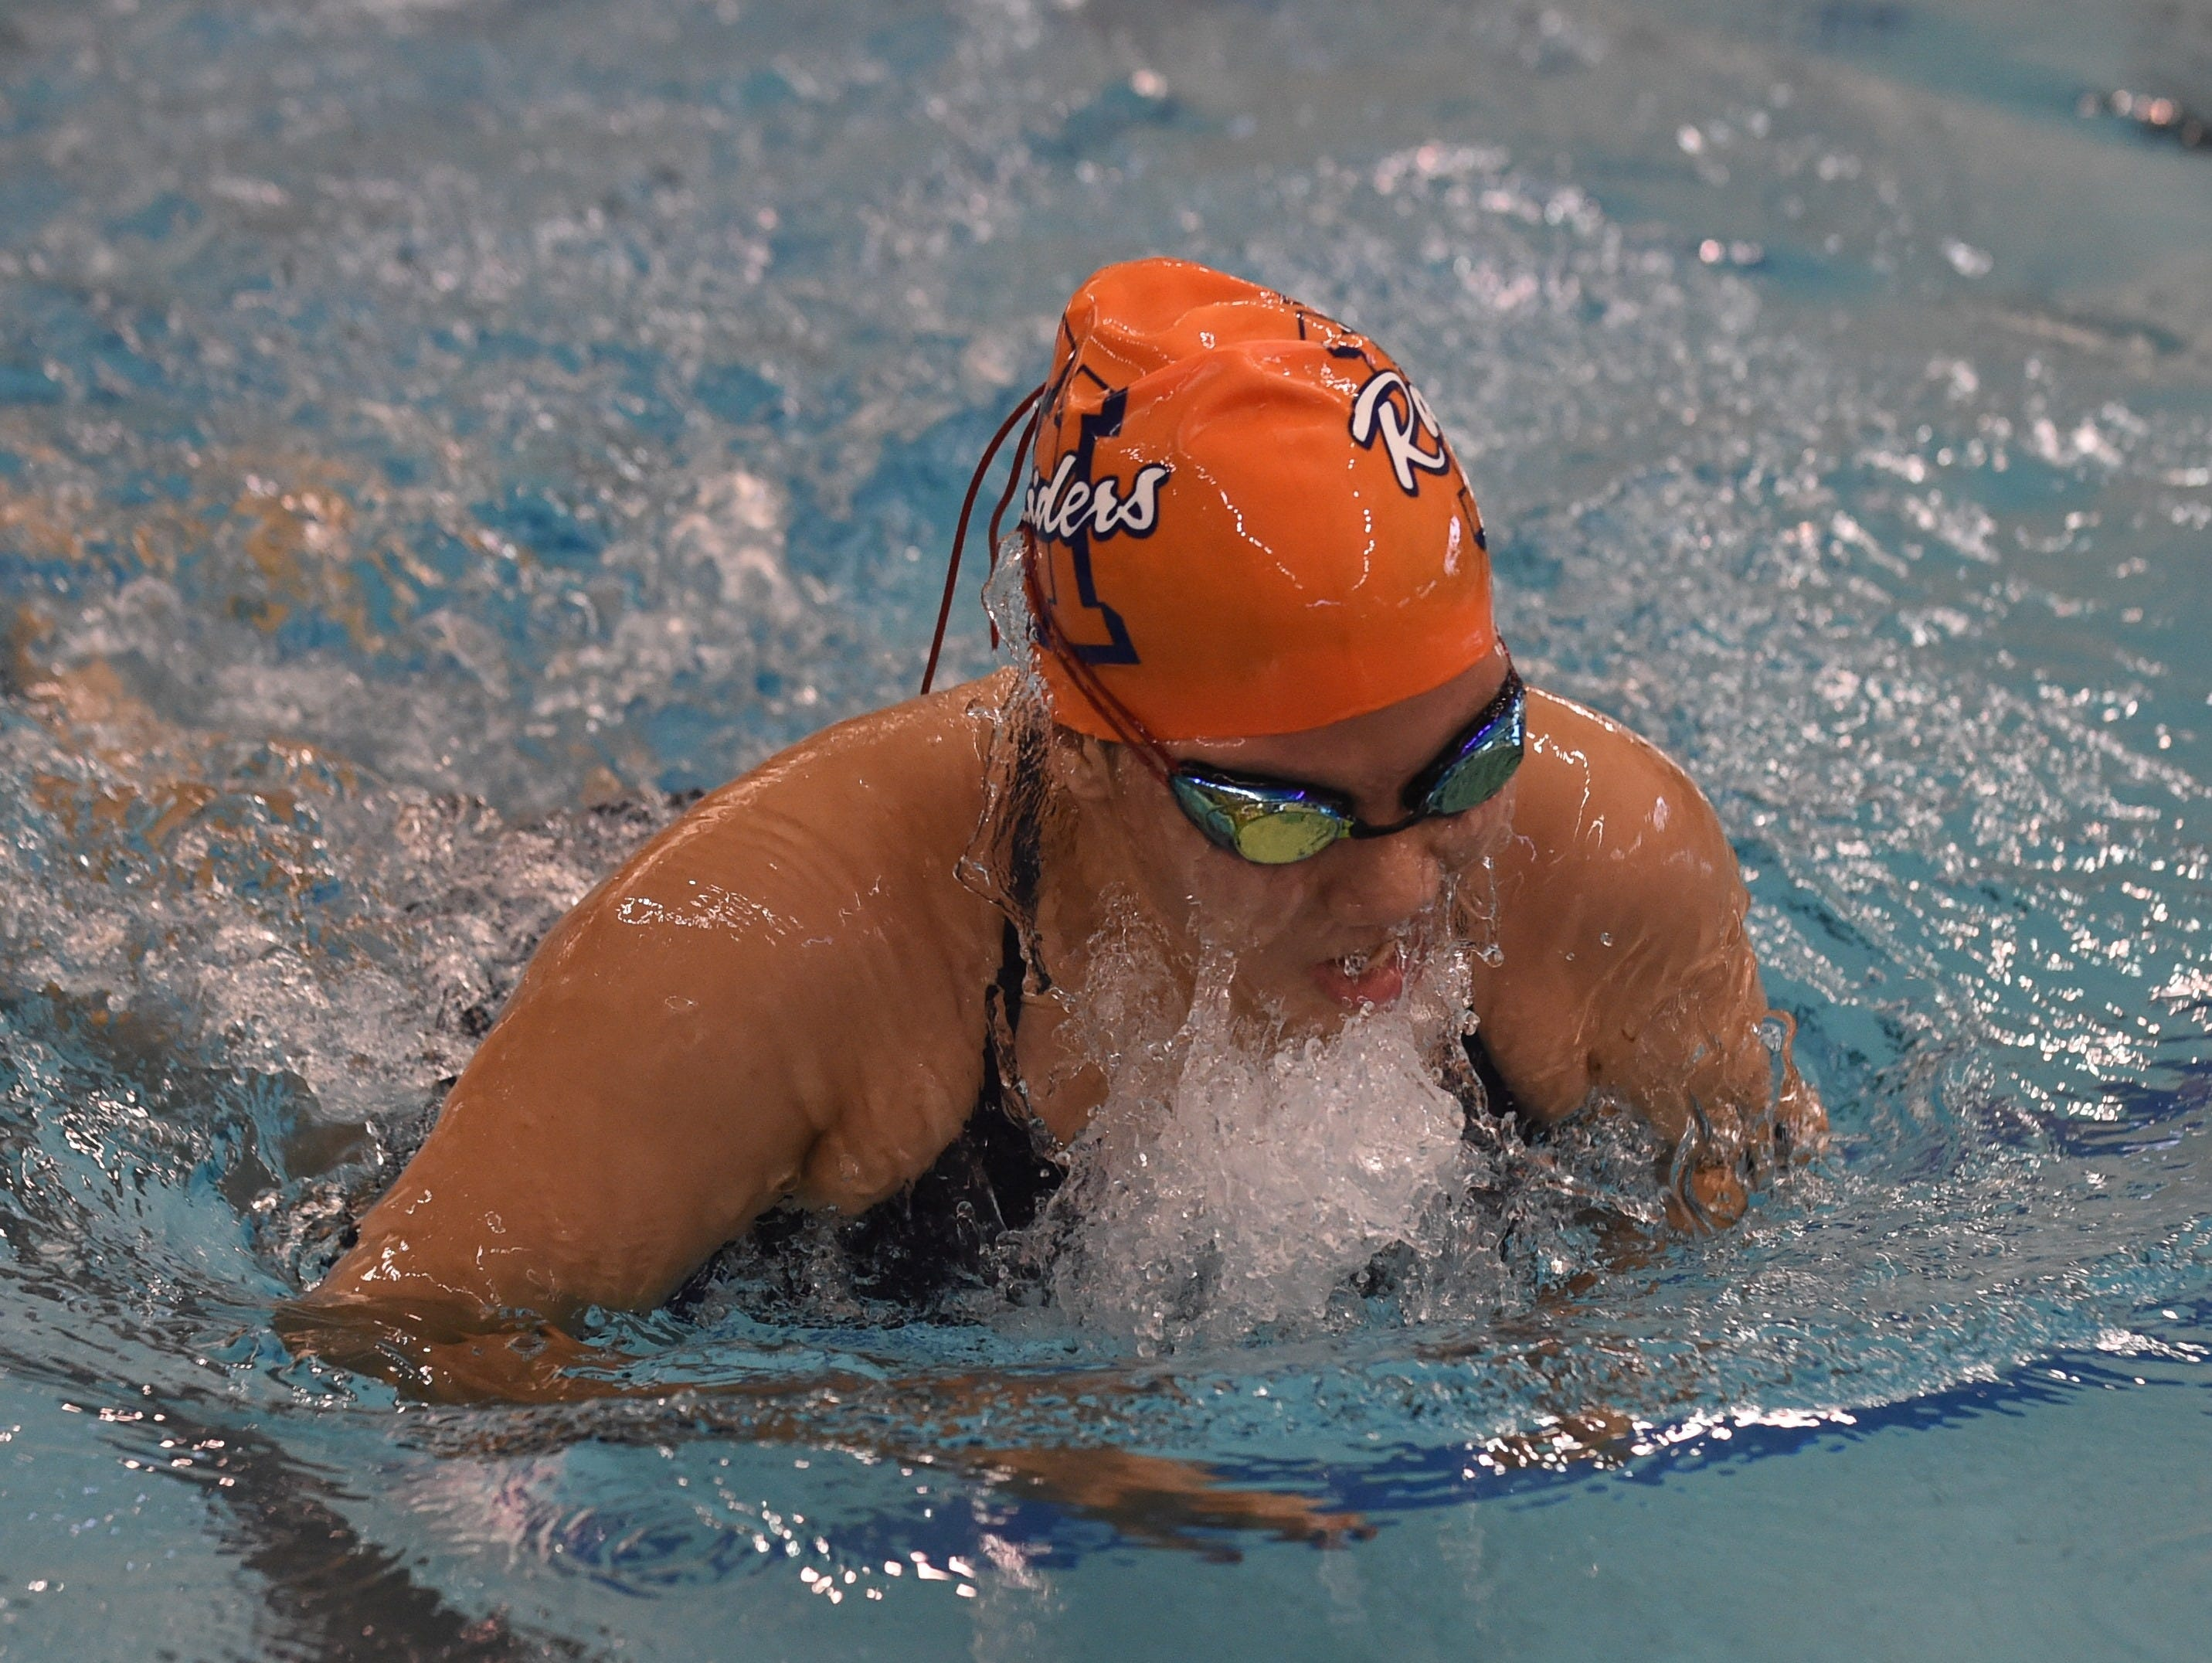 Images from Saturday's North Central Conference Swimming and Diving Championships at Purdue. Marle Tedy Gabriel.